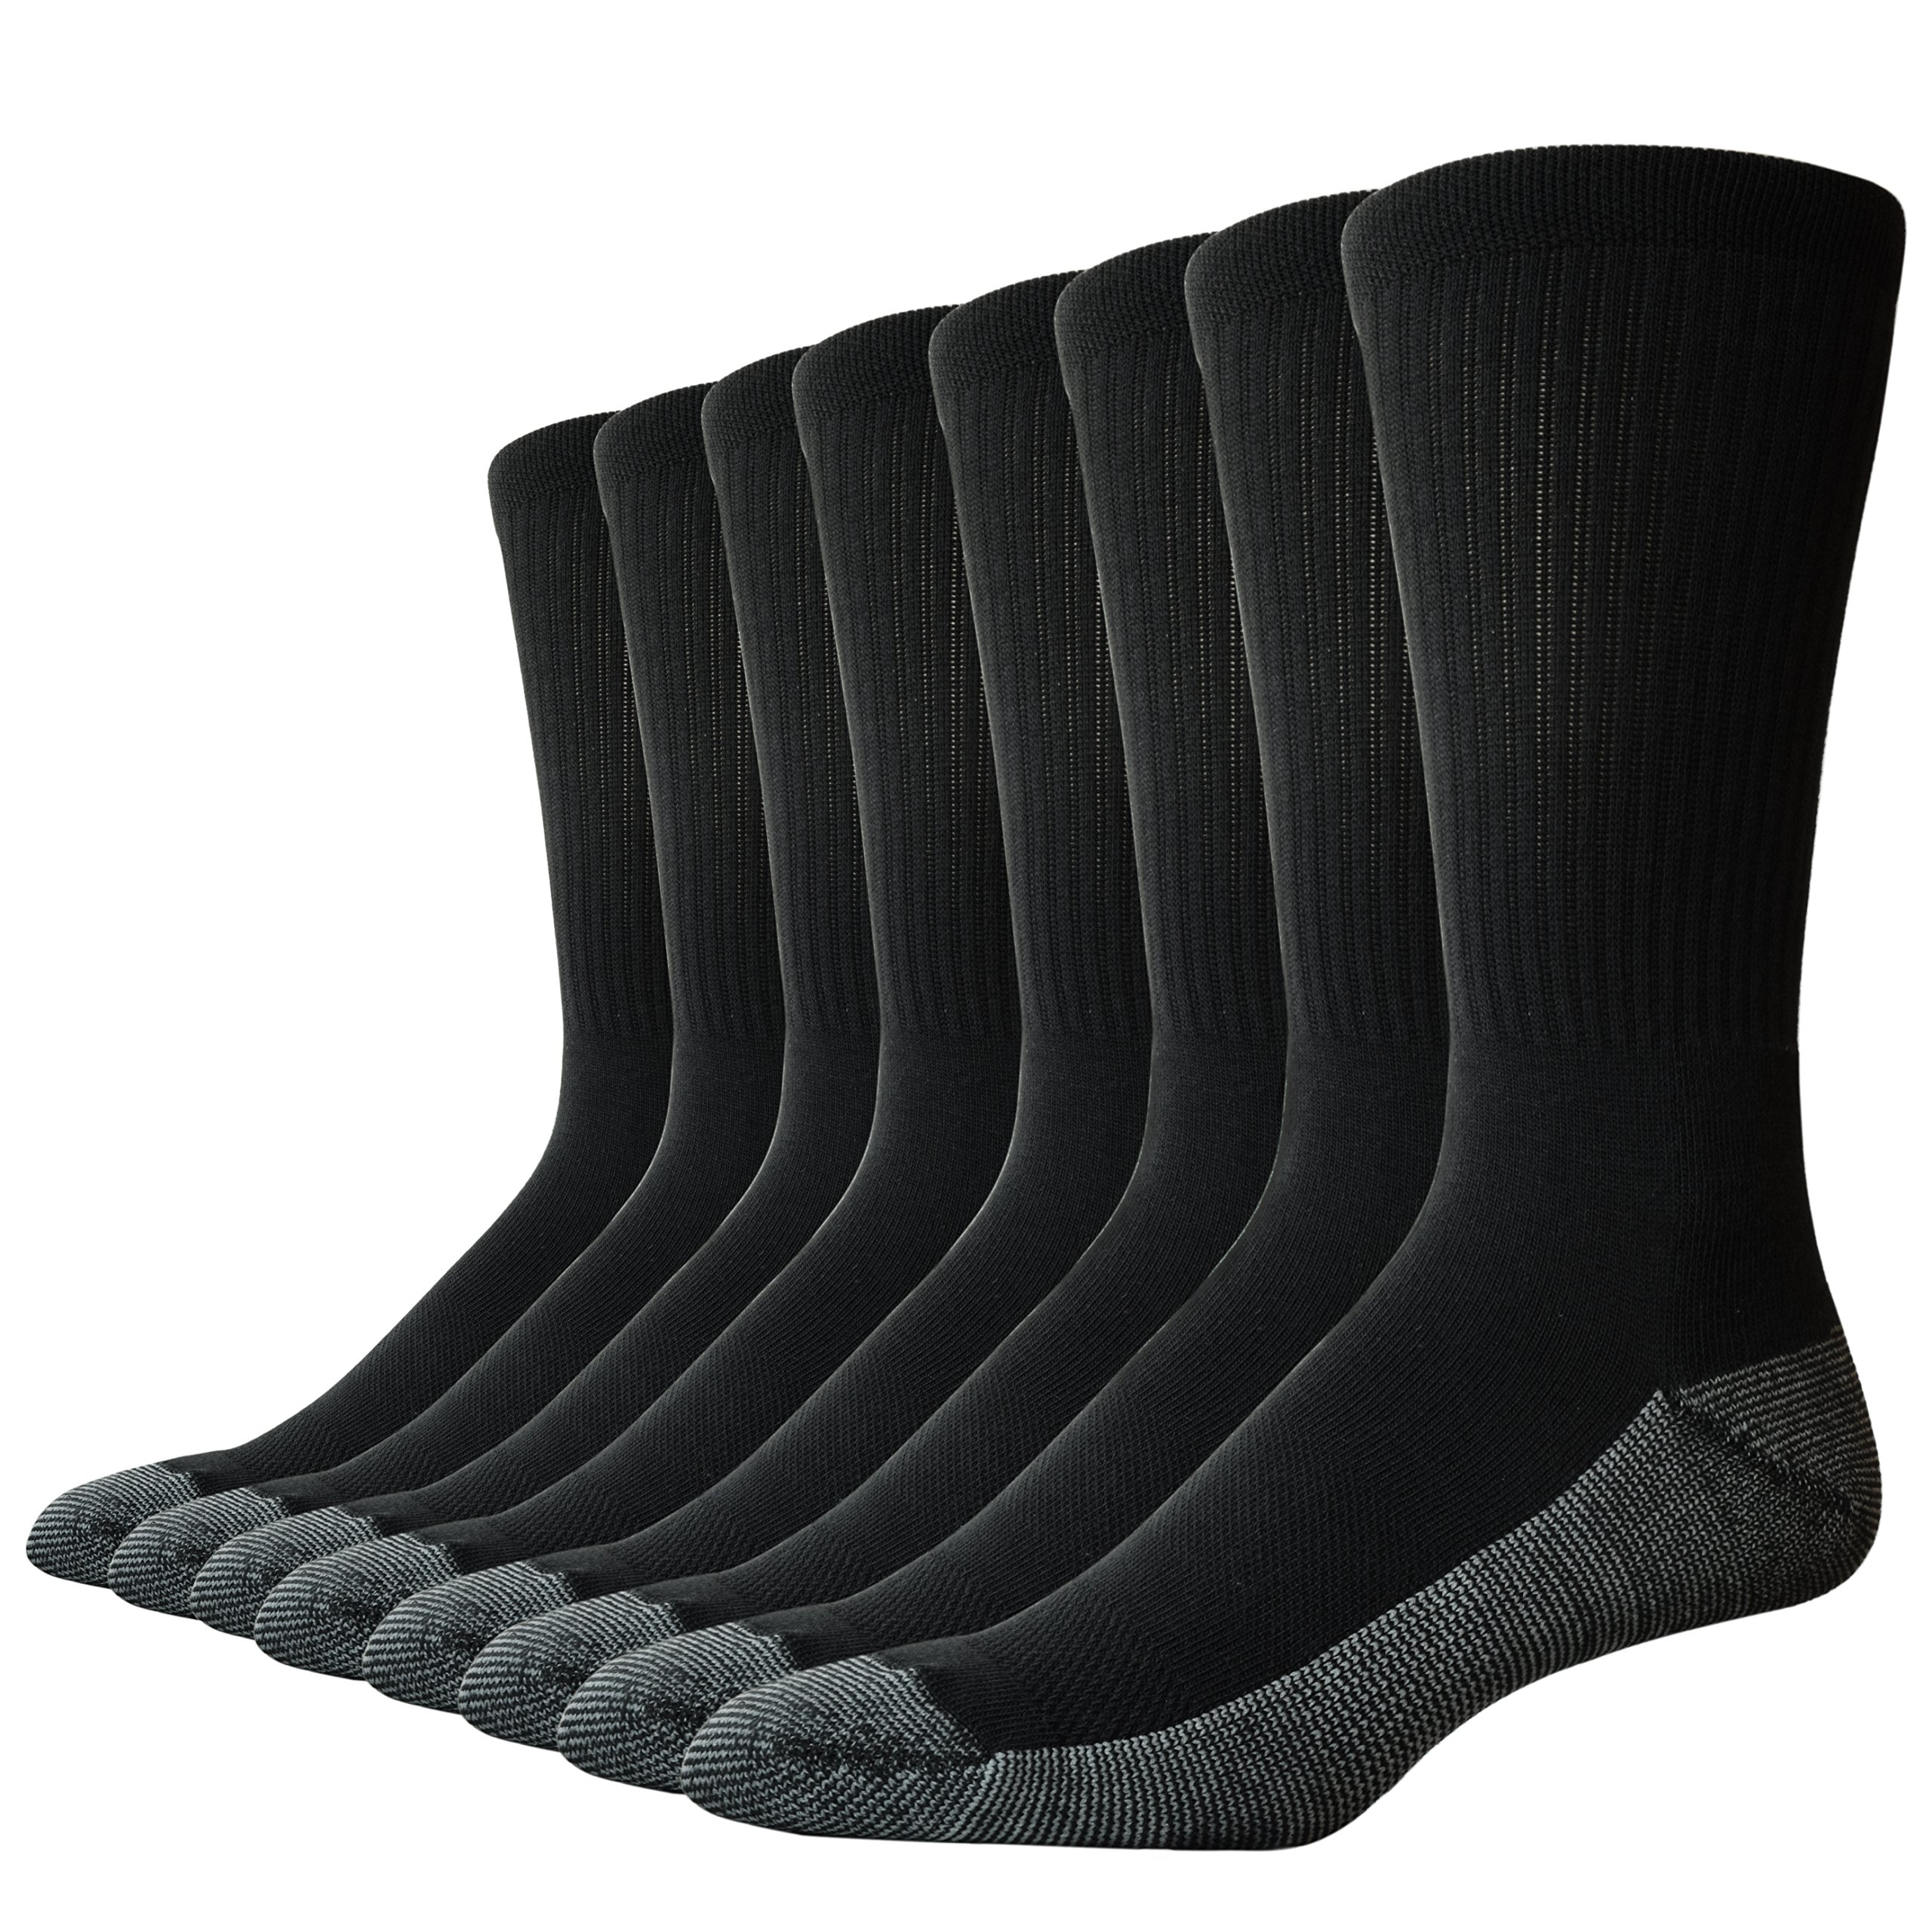 The Sock Crew Mens 8 Pair Pack Crew Work Socks with cushion sole, arch support and mesh ventilation, Sock Size: 10-13 Fits Shoe 6-12, Black